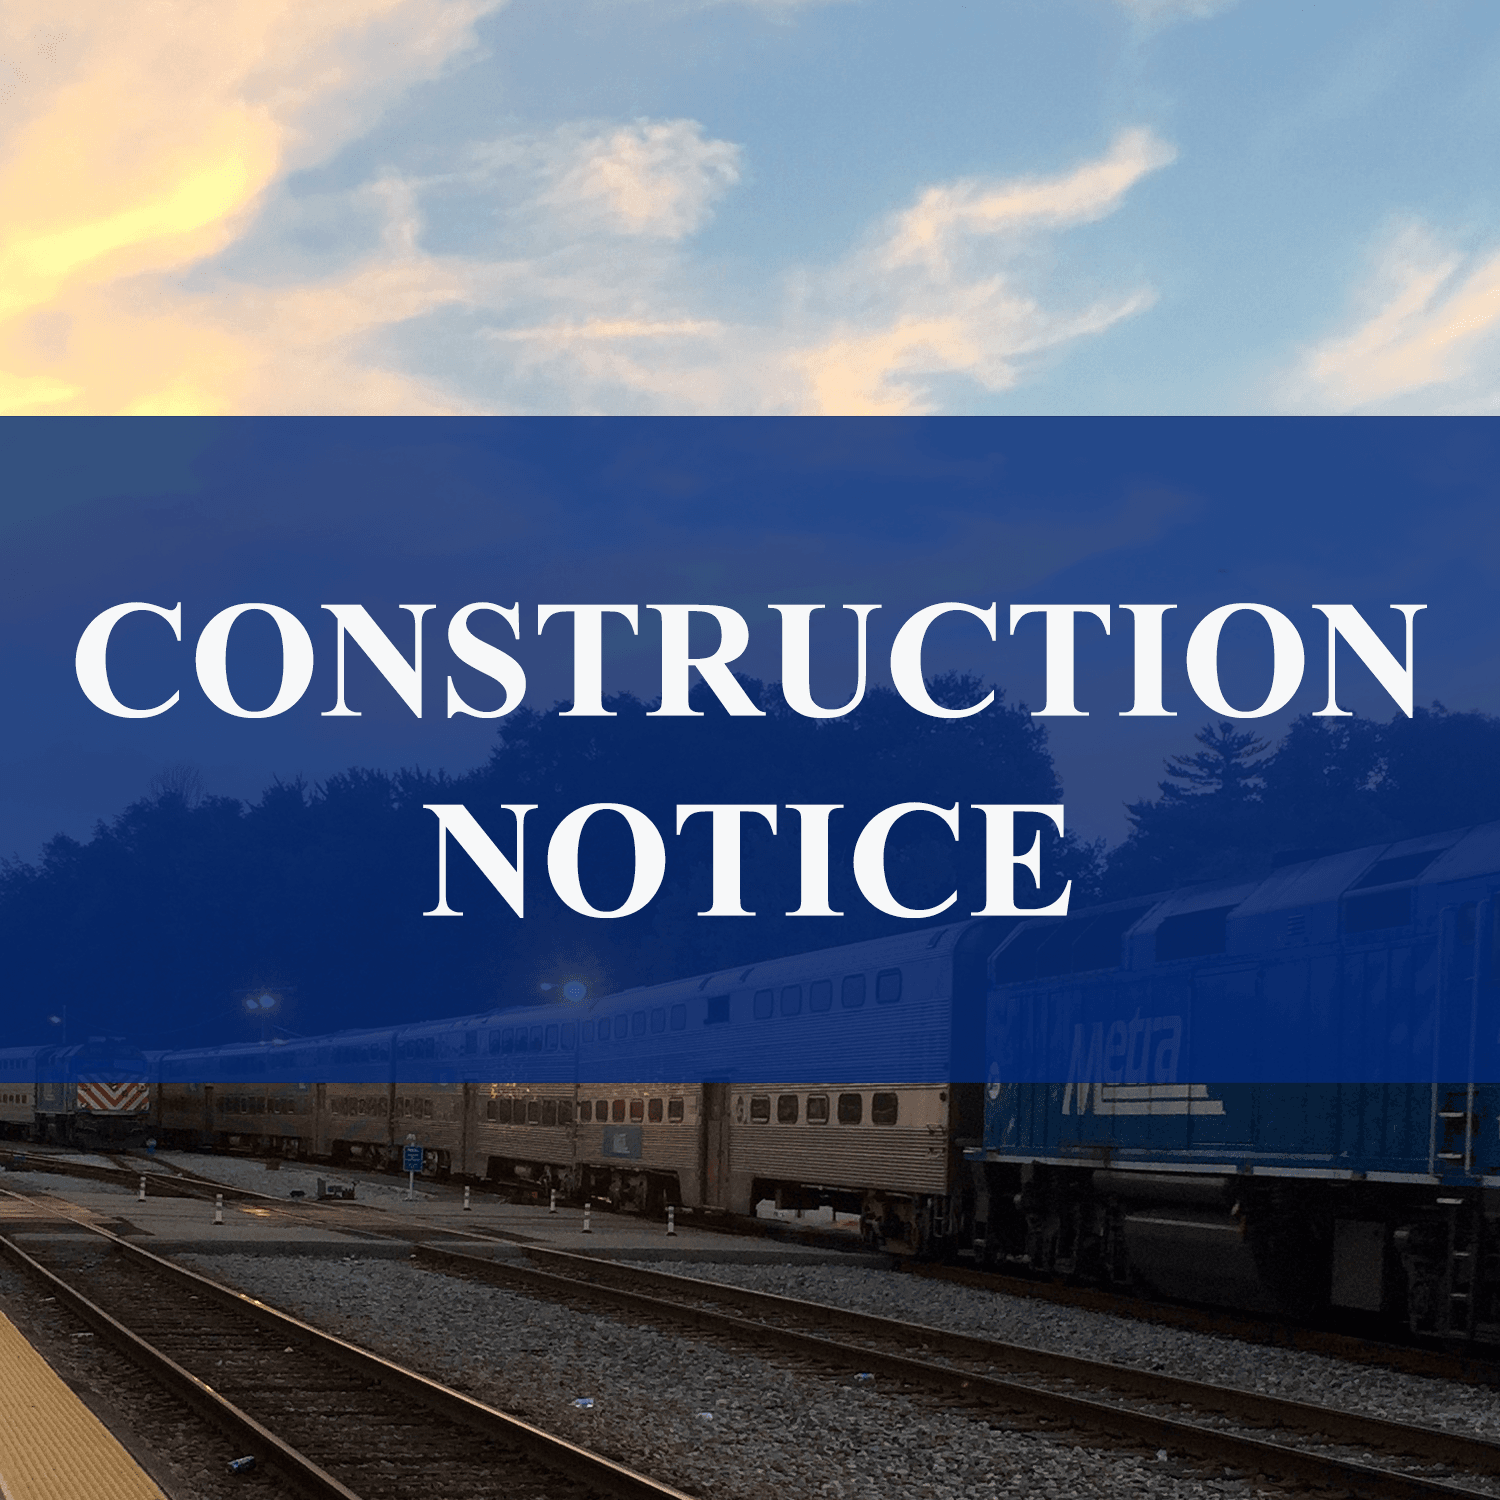 Construction Notice METRA